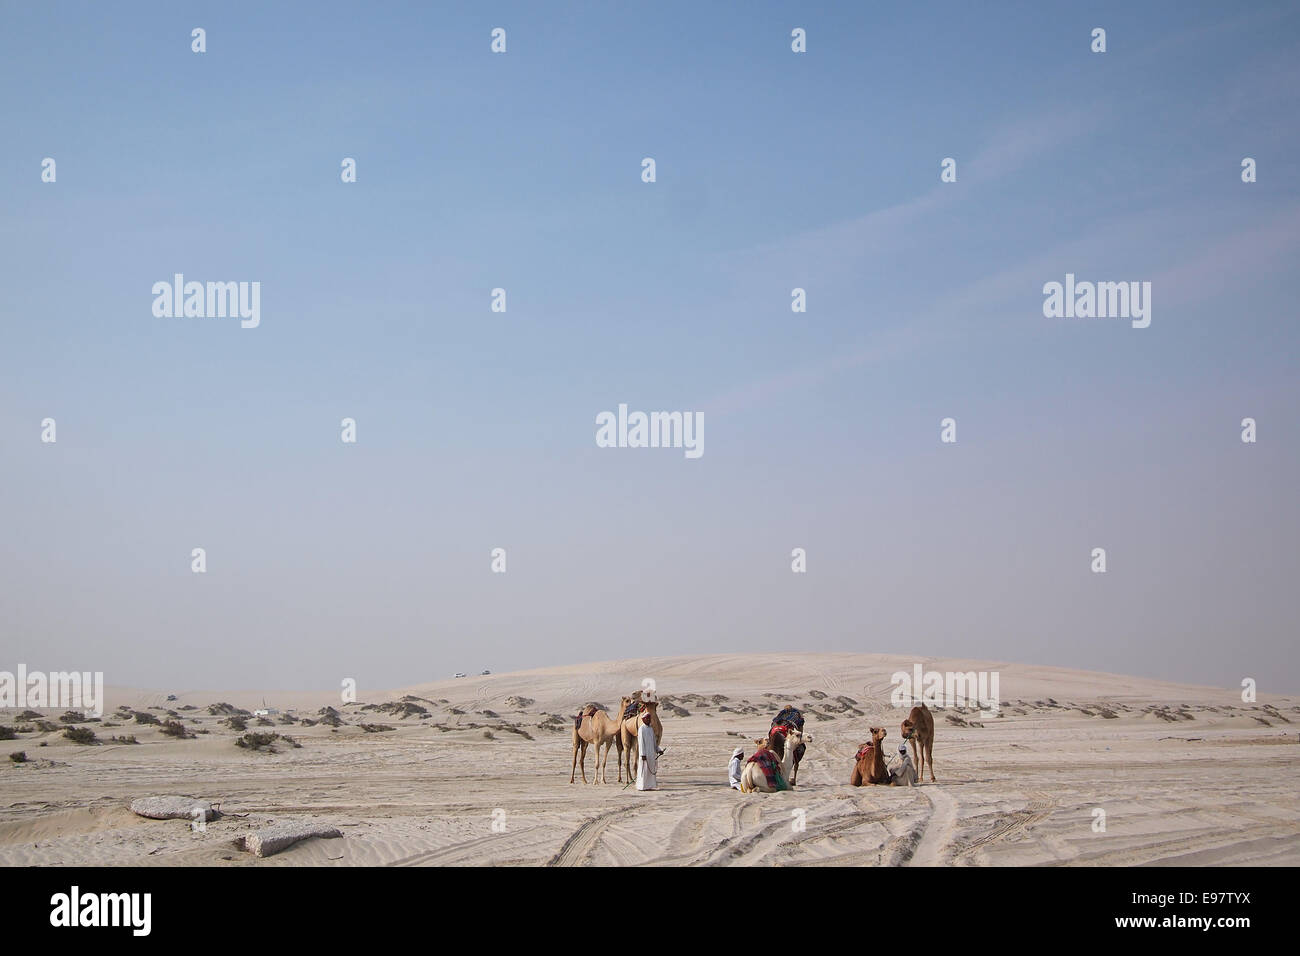 A group bedouin with dromedaries in the sand of the Arabian desert in the Arabian Gulf state Qatar. Stock Photo